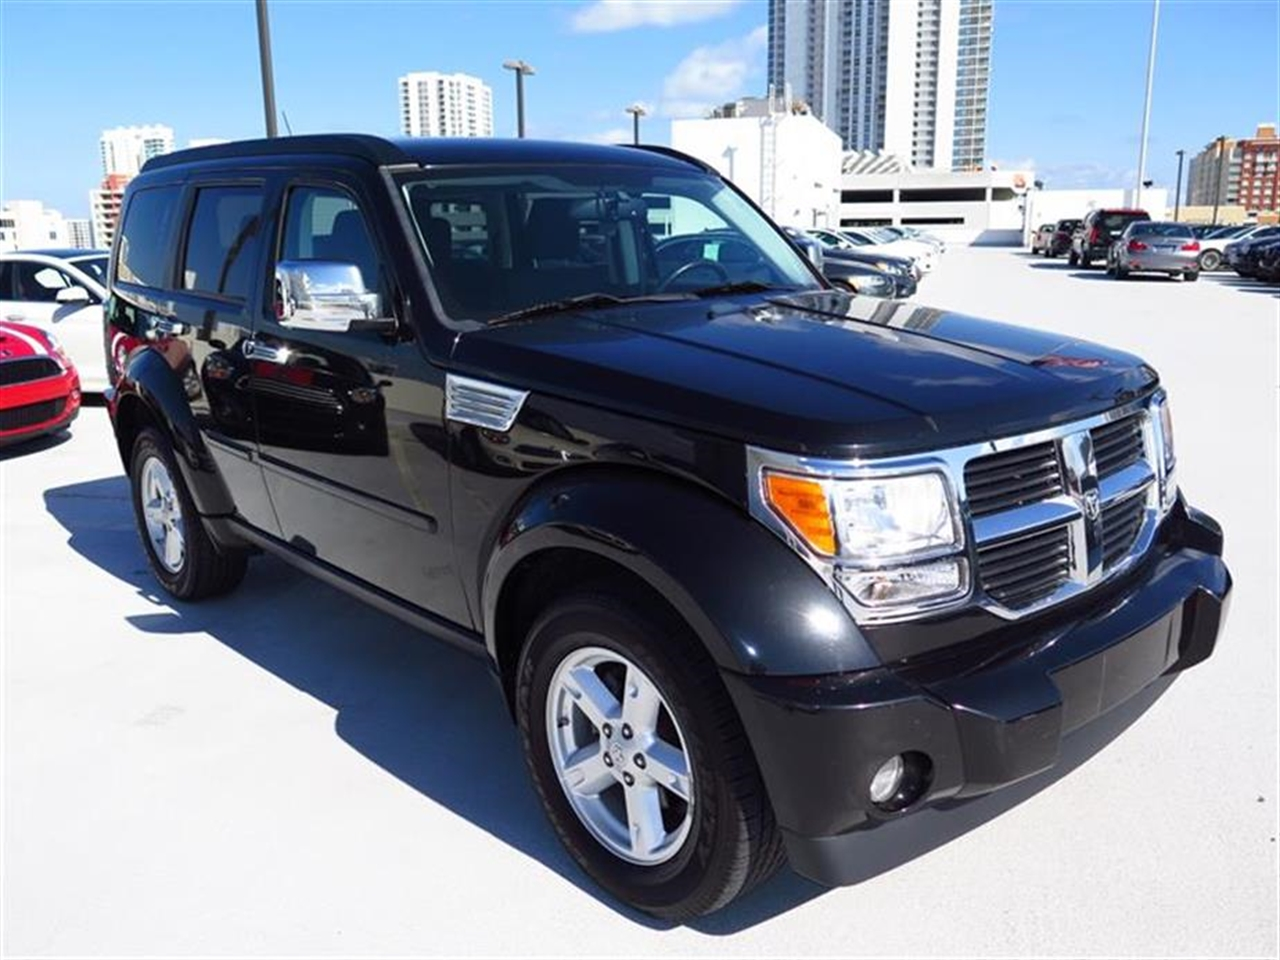 2008 DODGE NITRO 2WD 4dr SLT 39154 miles 115V auxiliary pwr outlet Air conditioning AMFMSirius